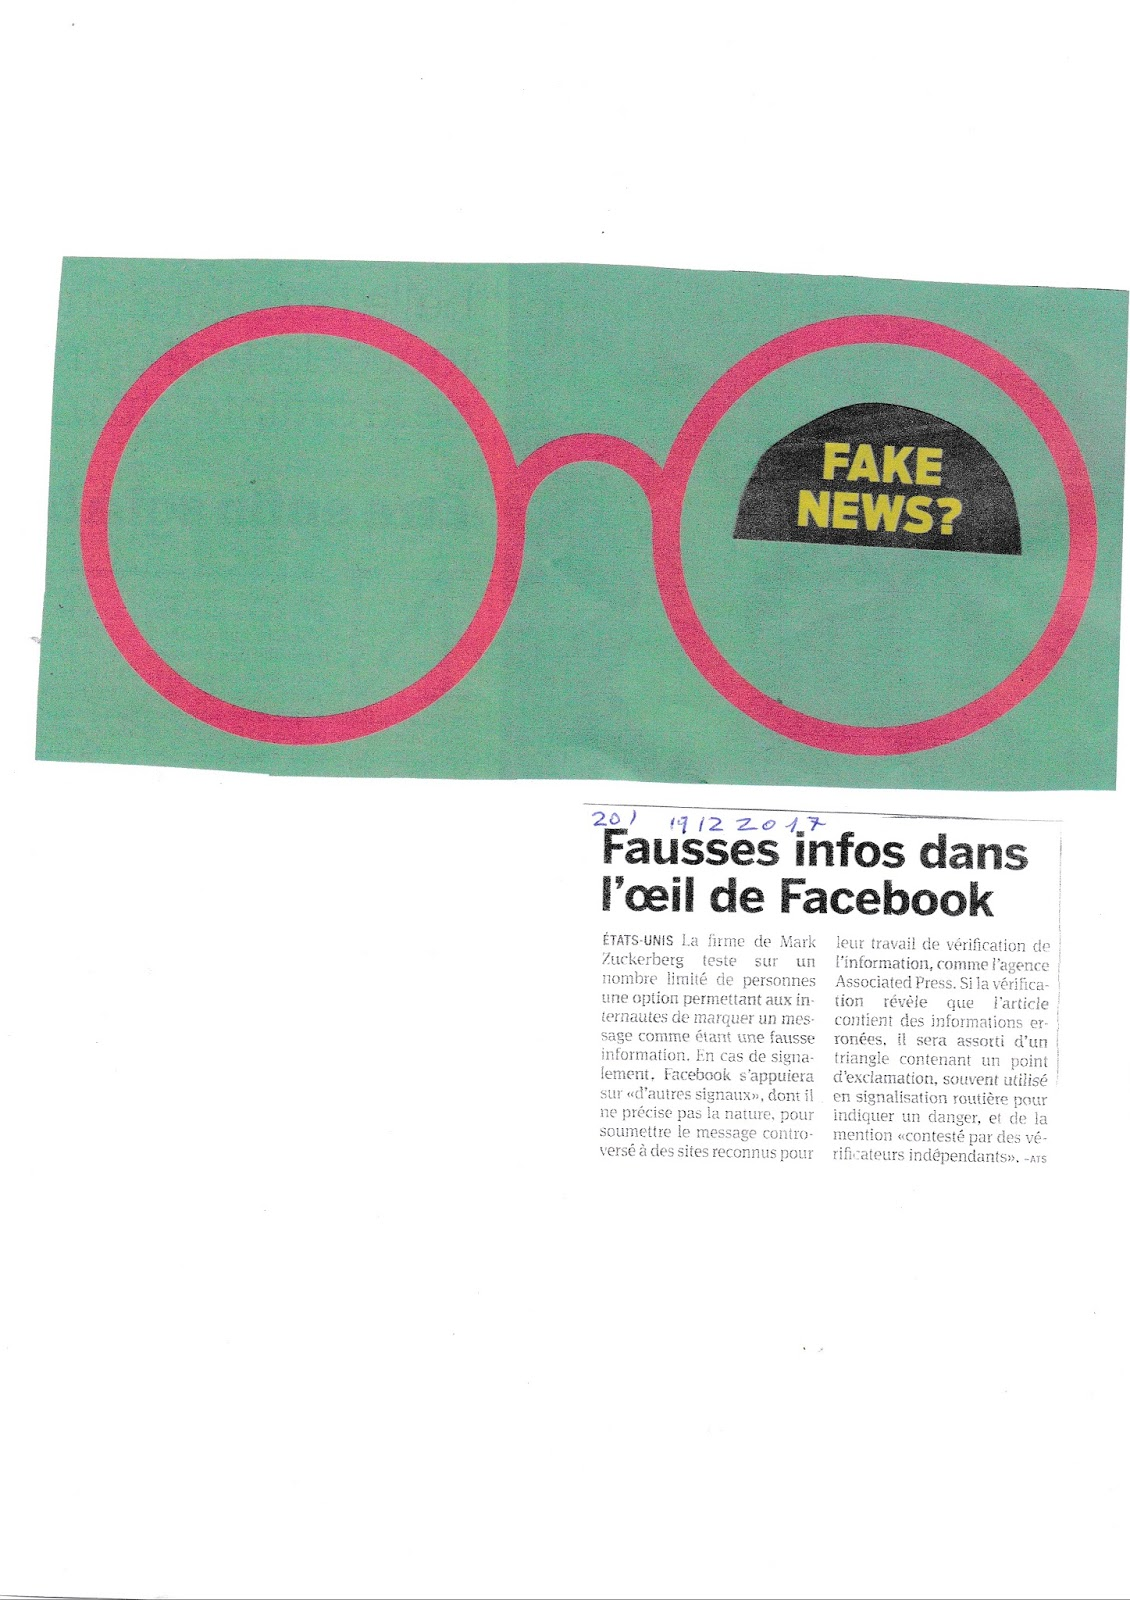 Fausses informations & manipulations